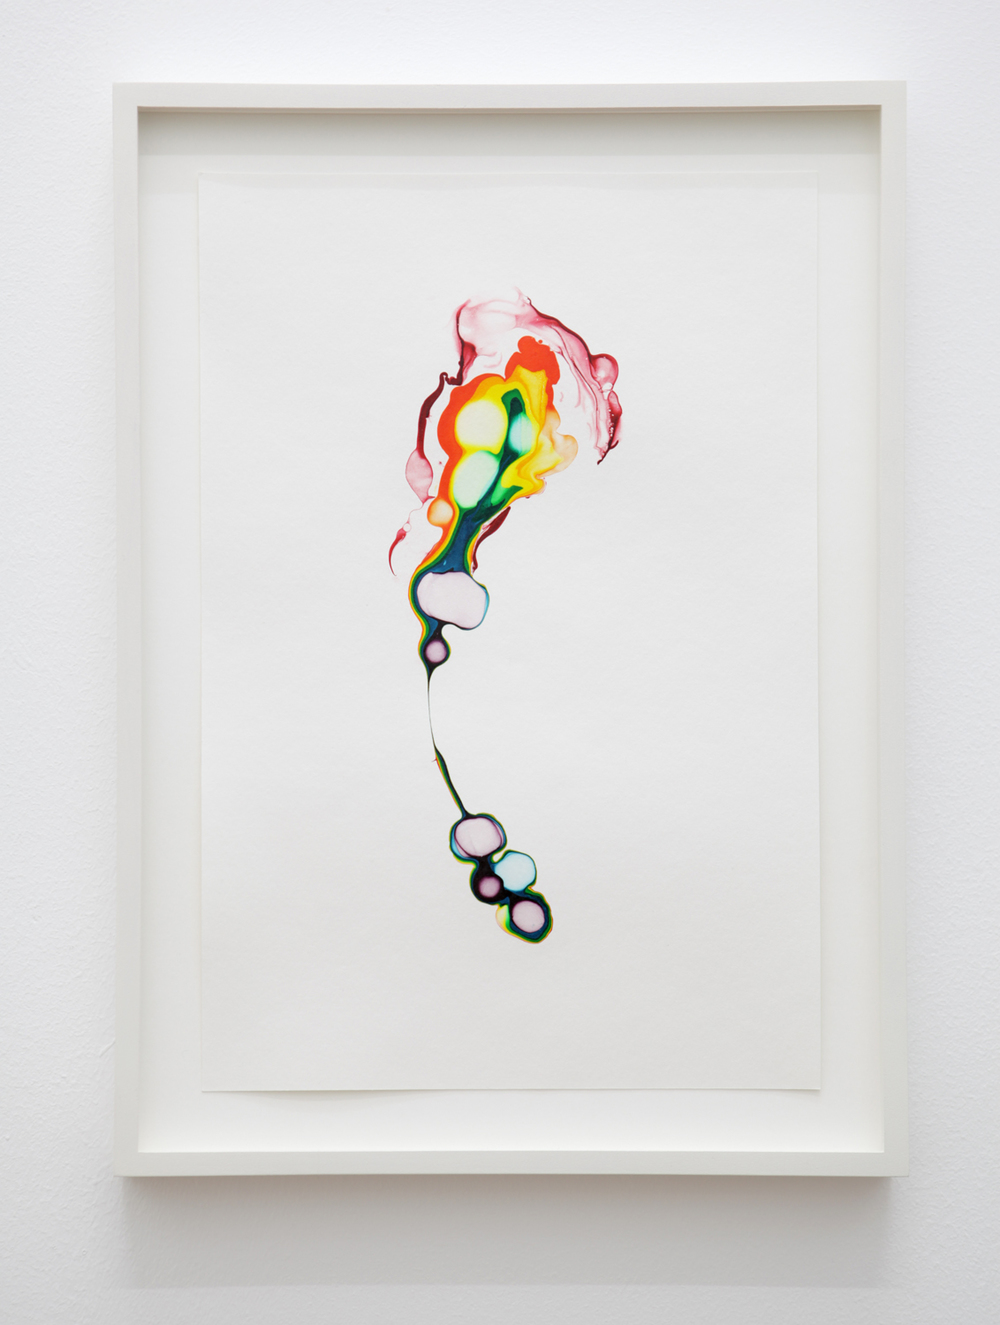 Scattered Rainbow/ enfys , 2014, ink on paper, 29,7 x 20cm